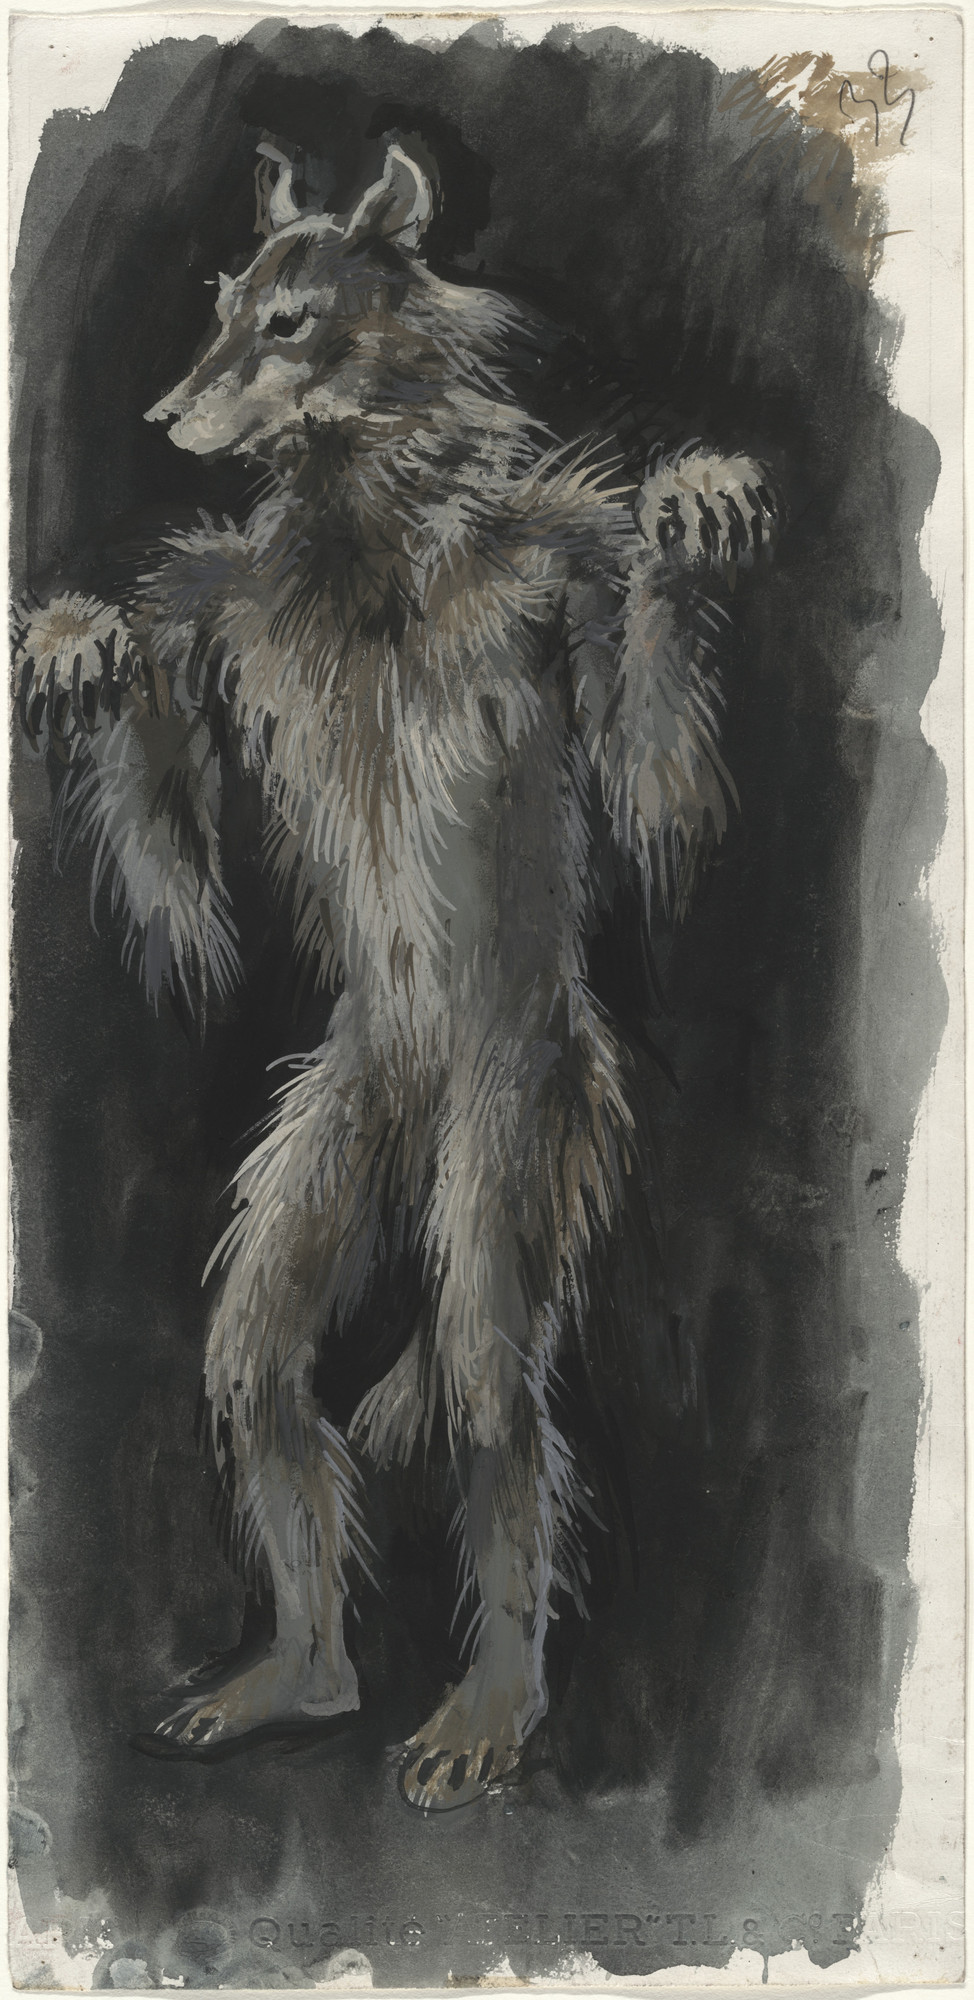 Pavel Tchelitchew. Wolf, from Nobilissima Visione or St. Francis. 1938